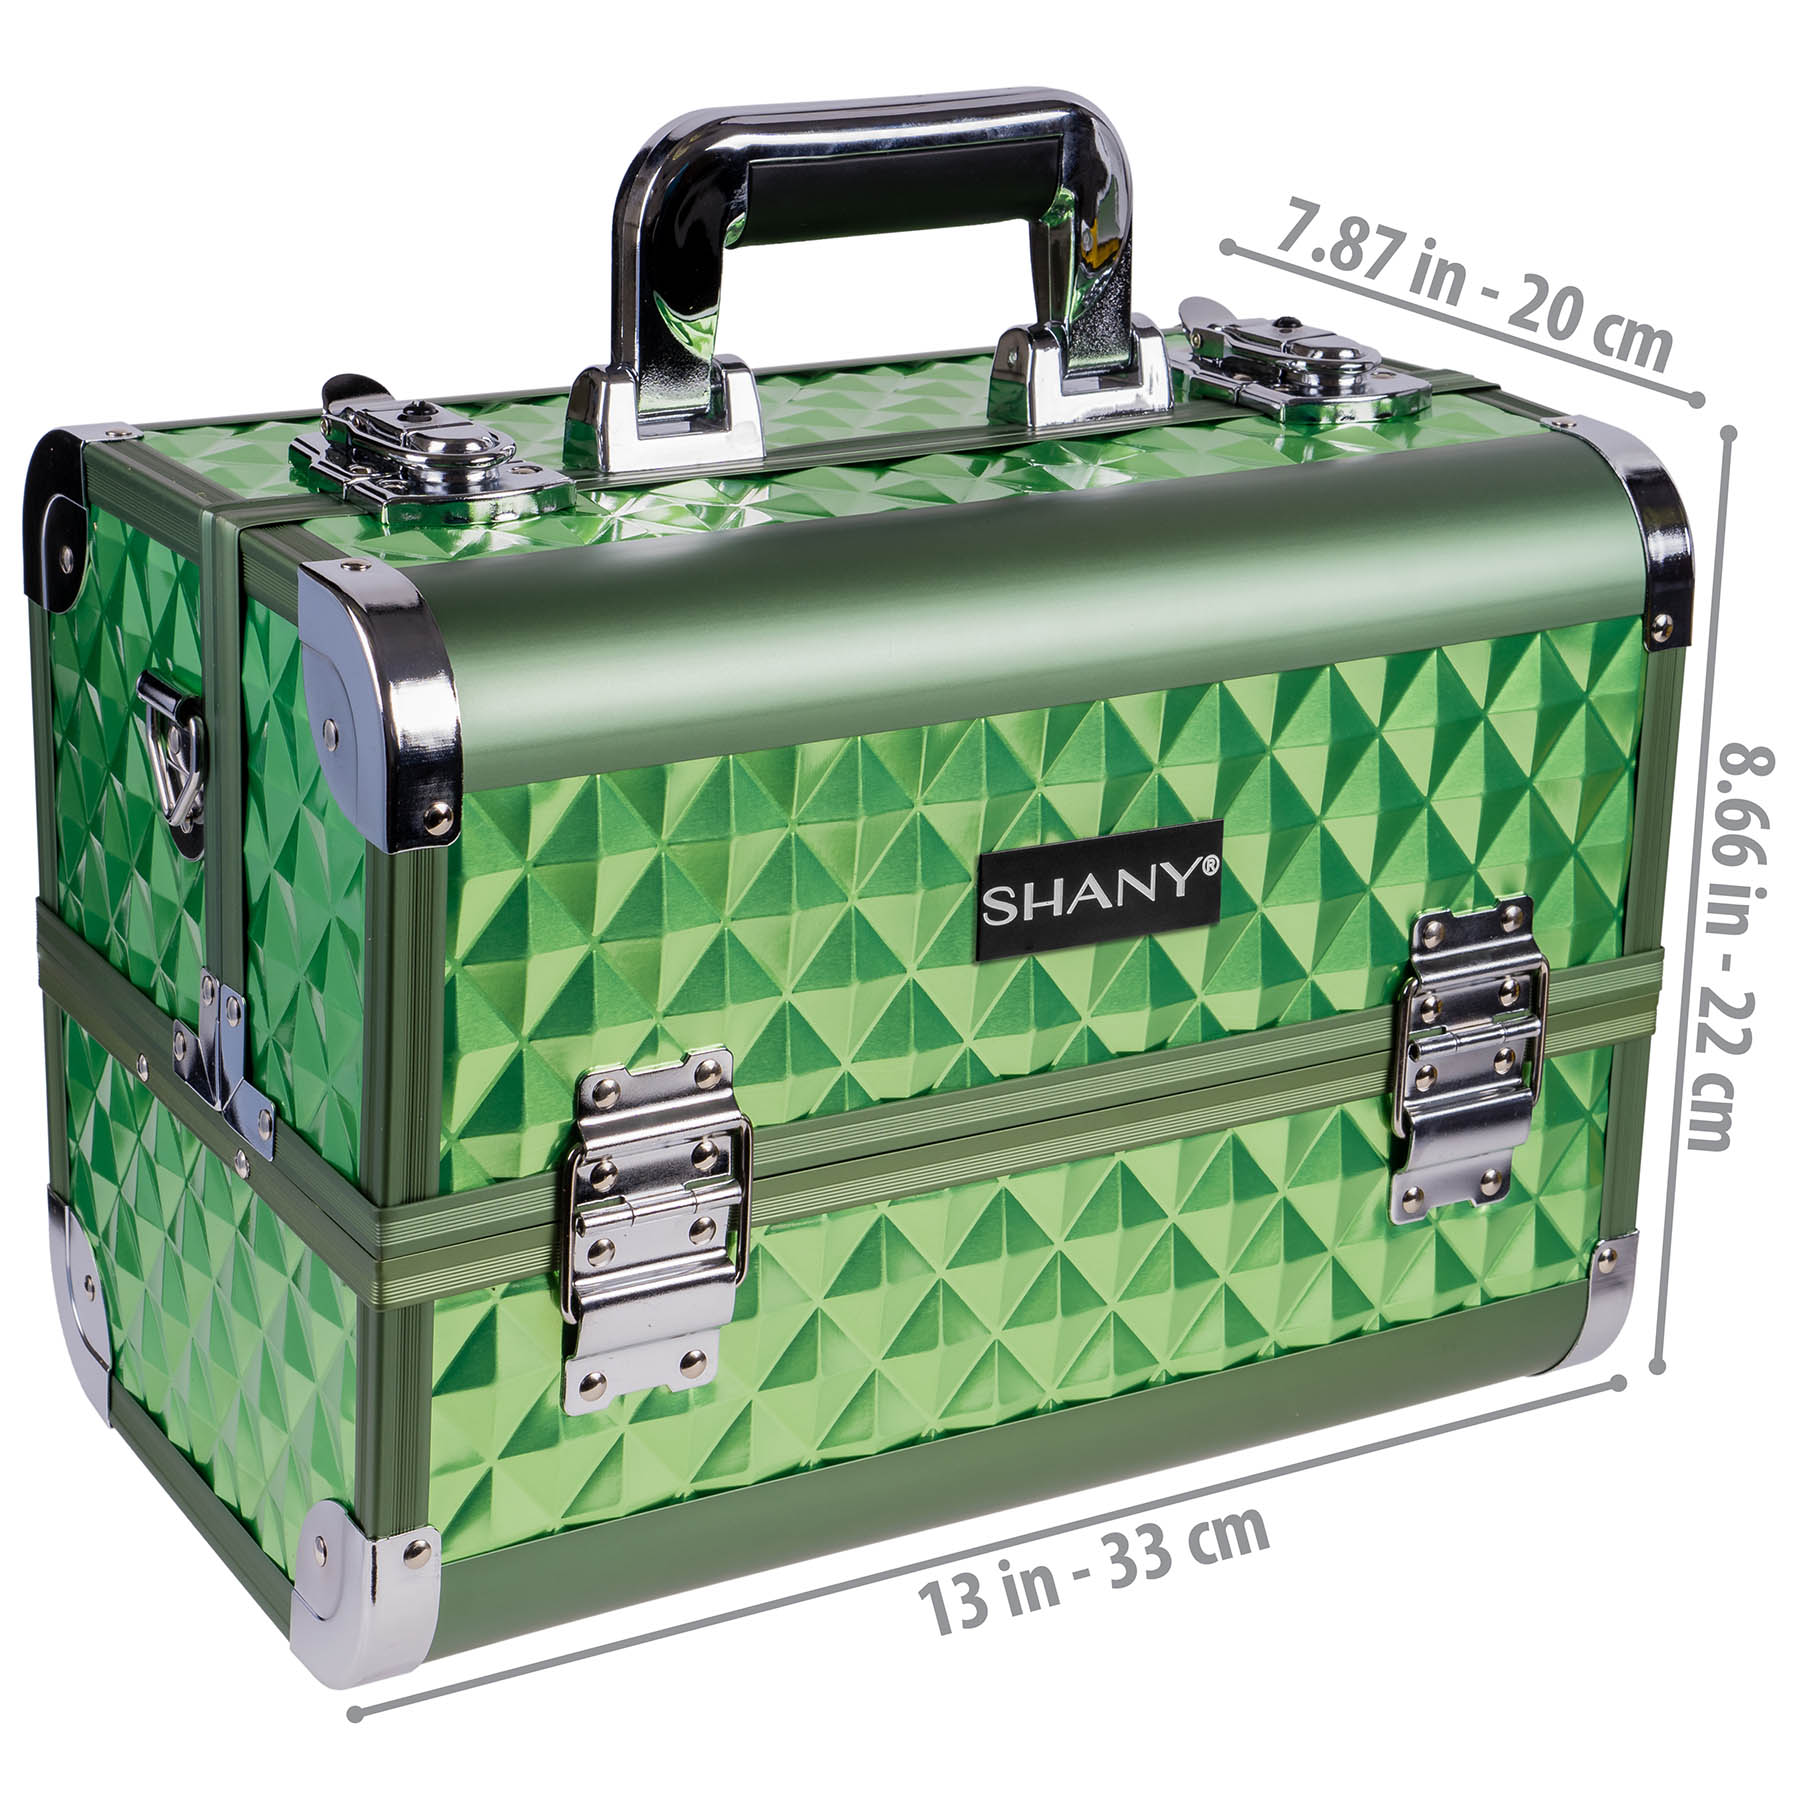 SHANY-Fantasy-Collection-Makeup-Artists-Cosmetics-Train-Case miniature 51